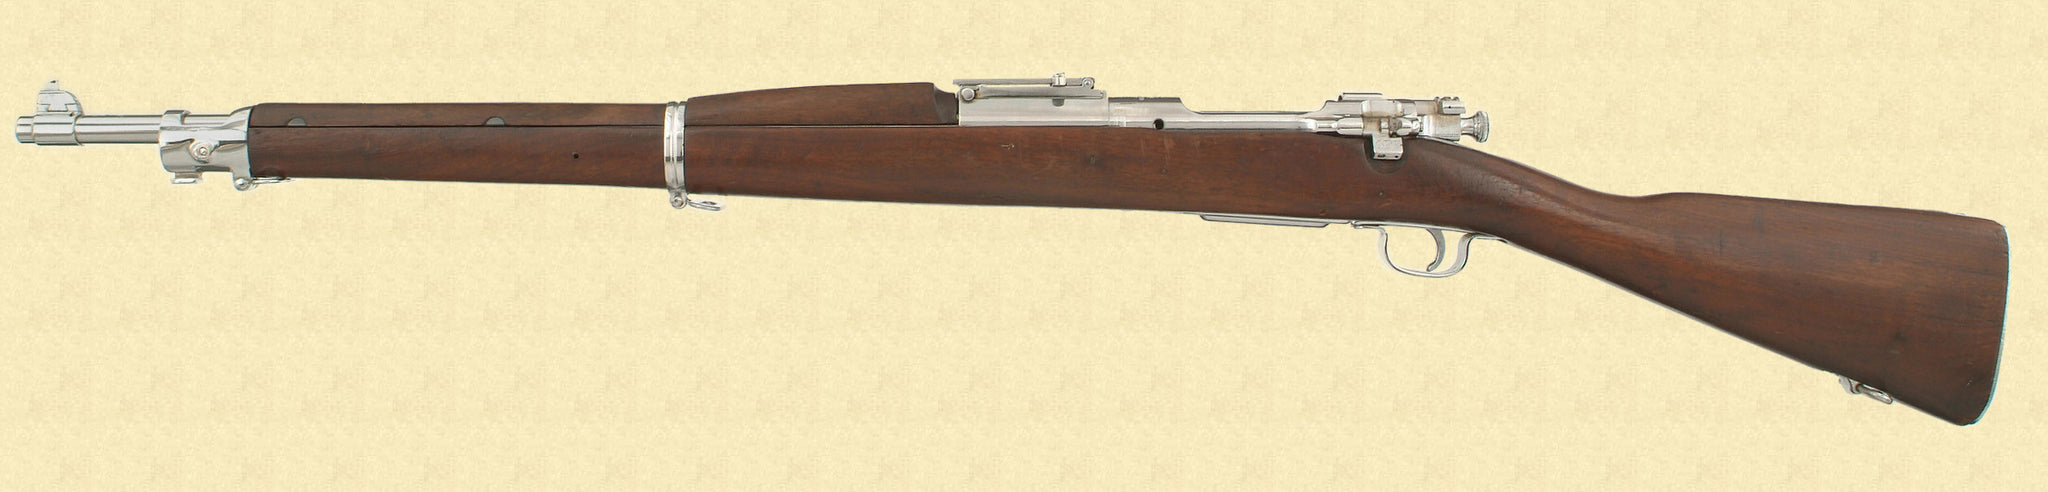 REMINGTON M1903